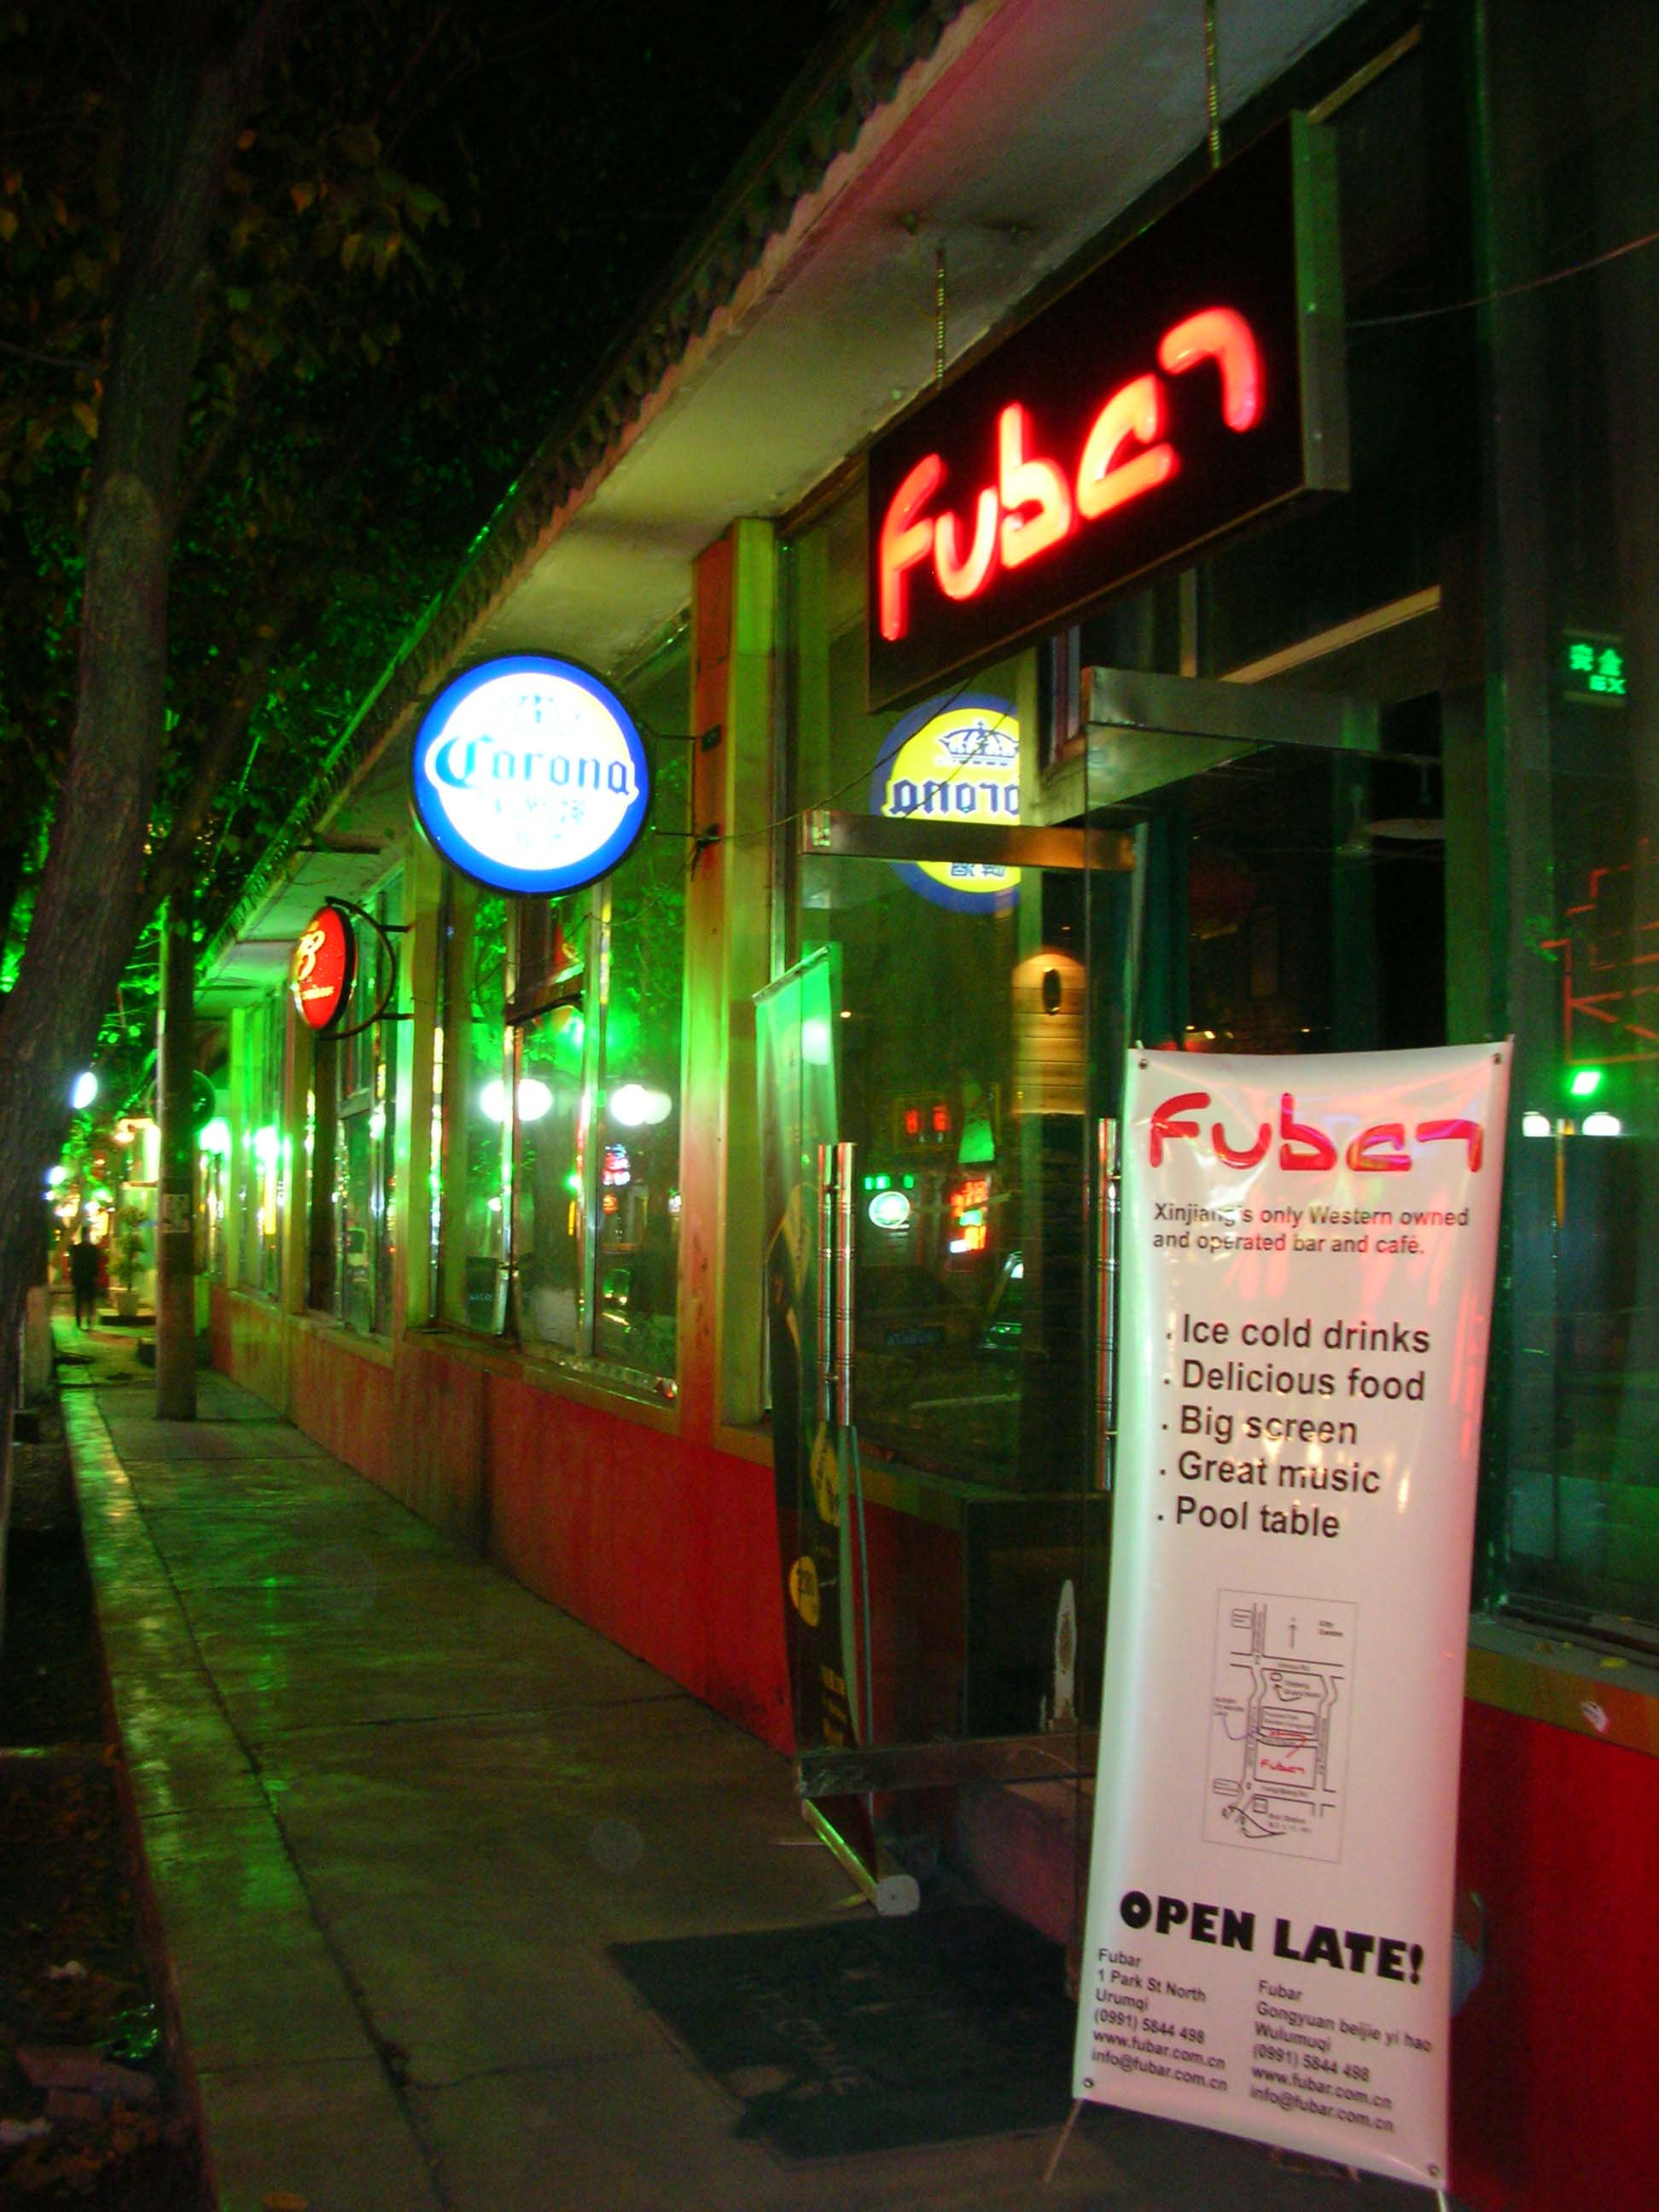 Now that I've visited Fubar in Urumqi, I'm officially a Xinjiang expat. Hooray! Recommended for it's Western drink, food, and atmosphere.